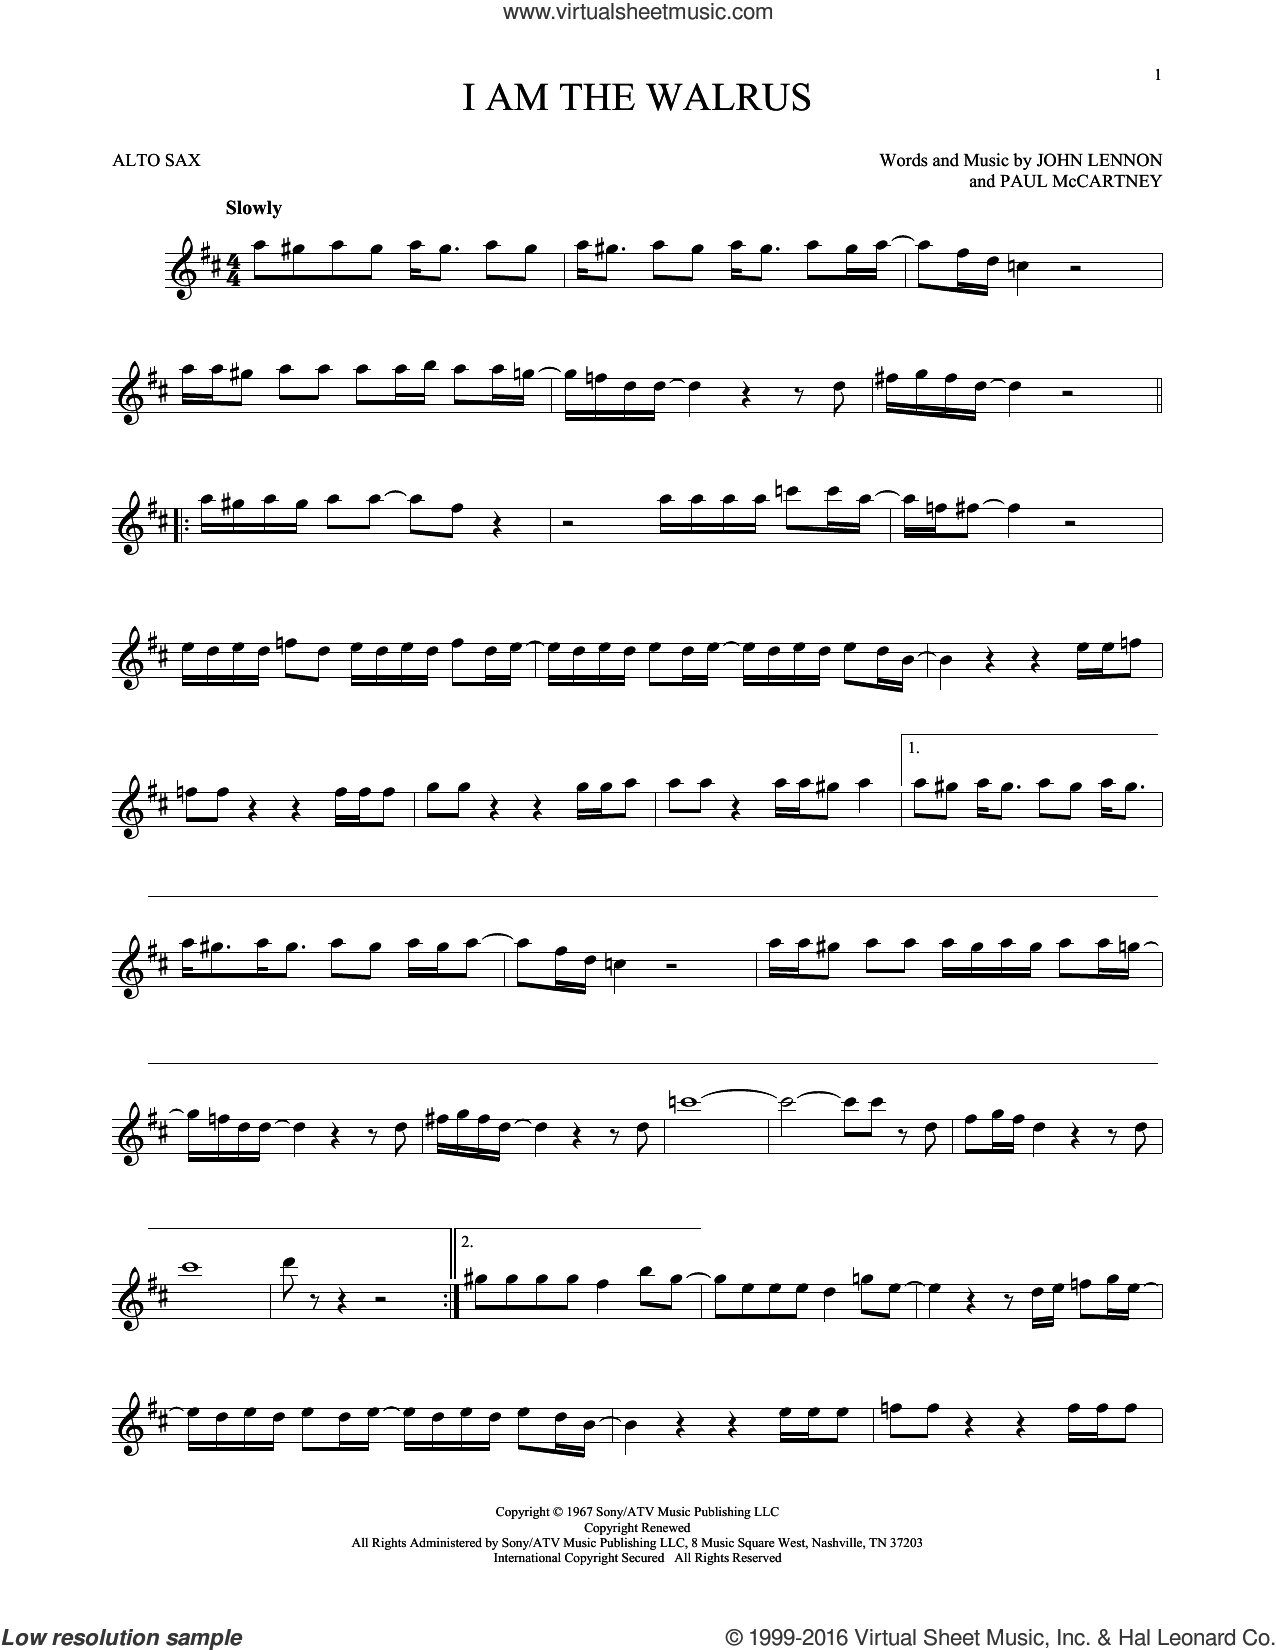 I Am The Walrus sheet music for alto saxophone solo by The Beatles, John Lennon and Paul McCartney, intermediate skill level